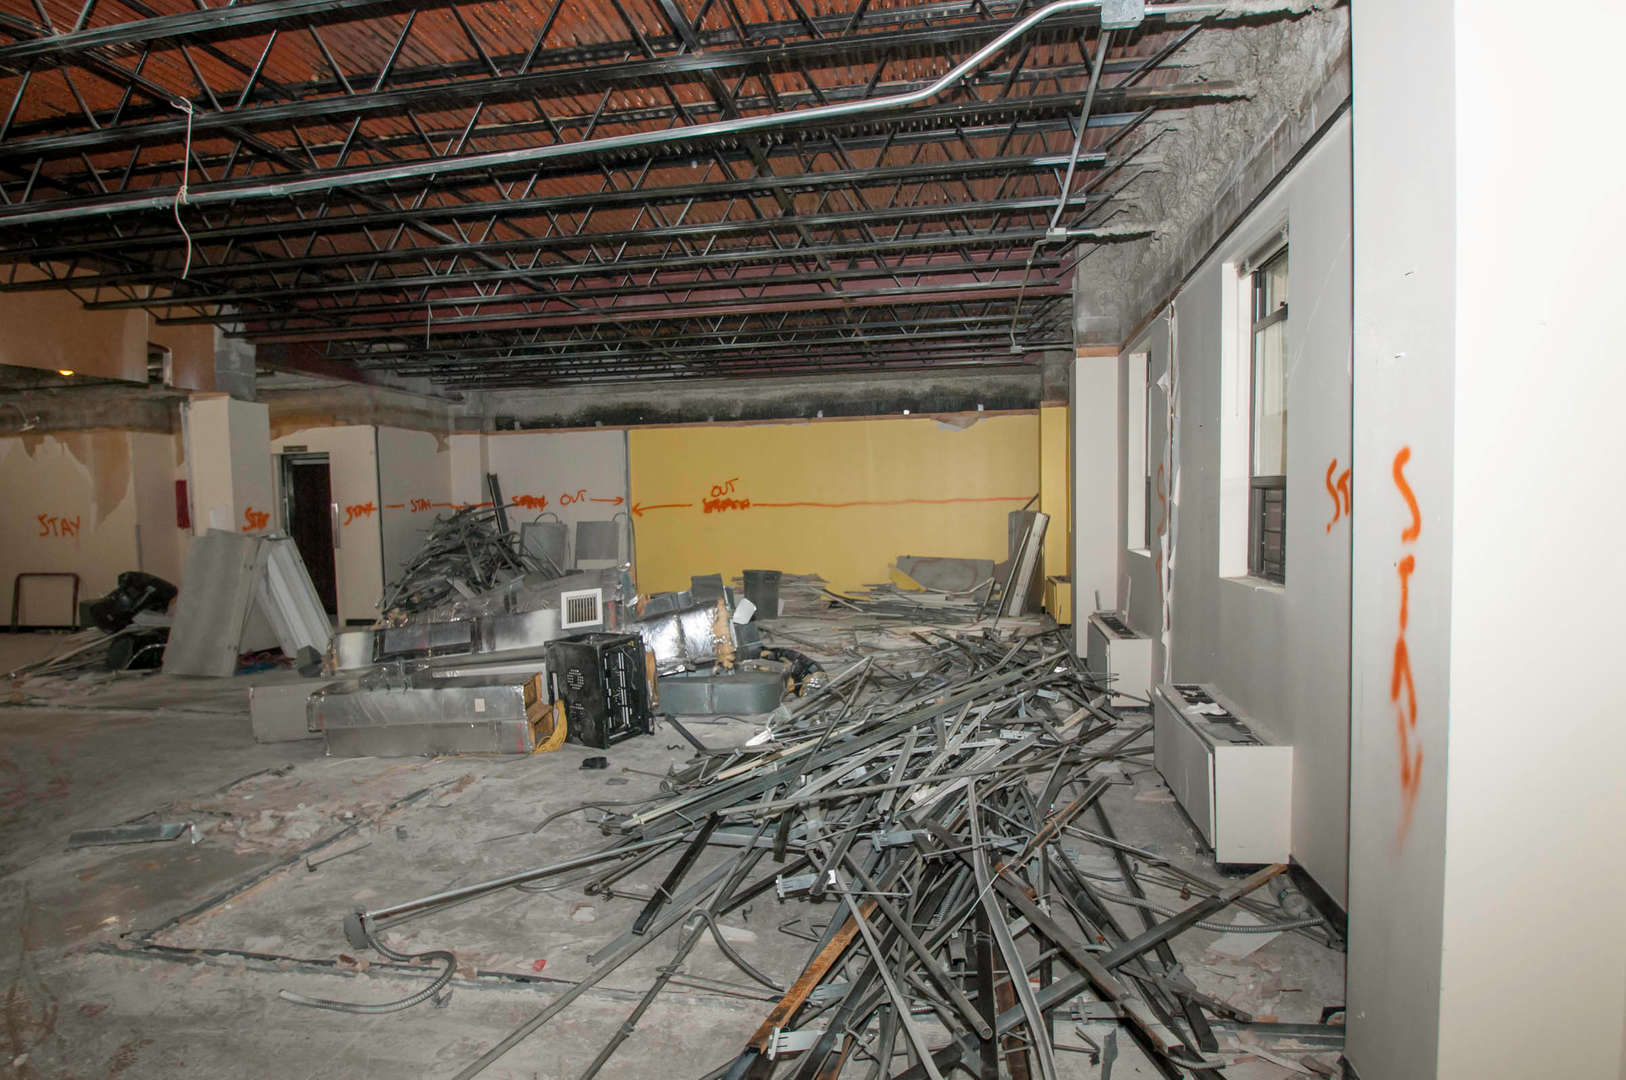 Interior third floor and administrative offices ceiling and walls demolished